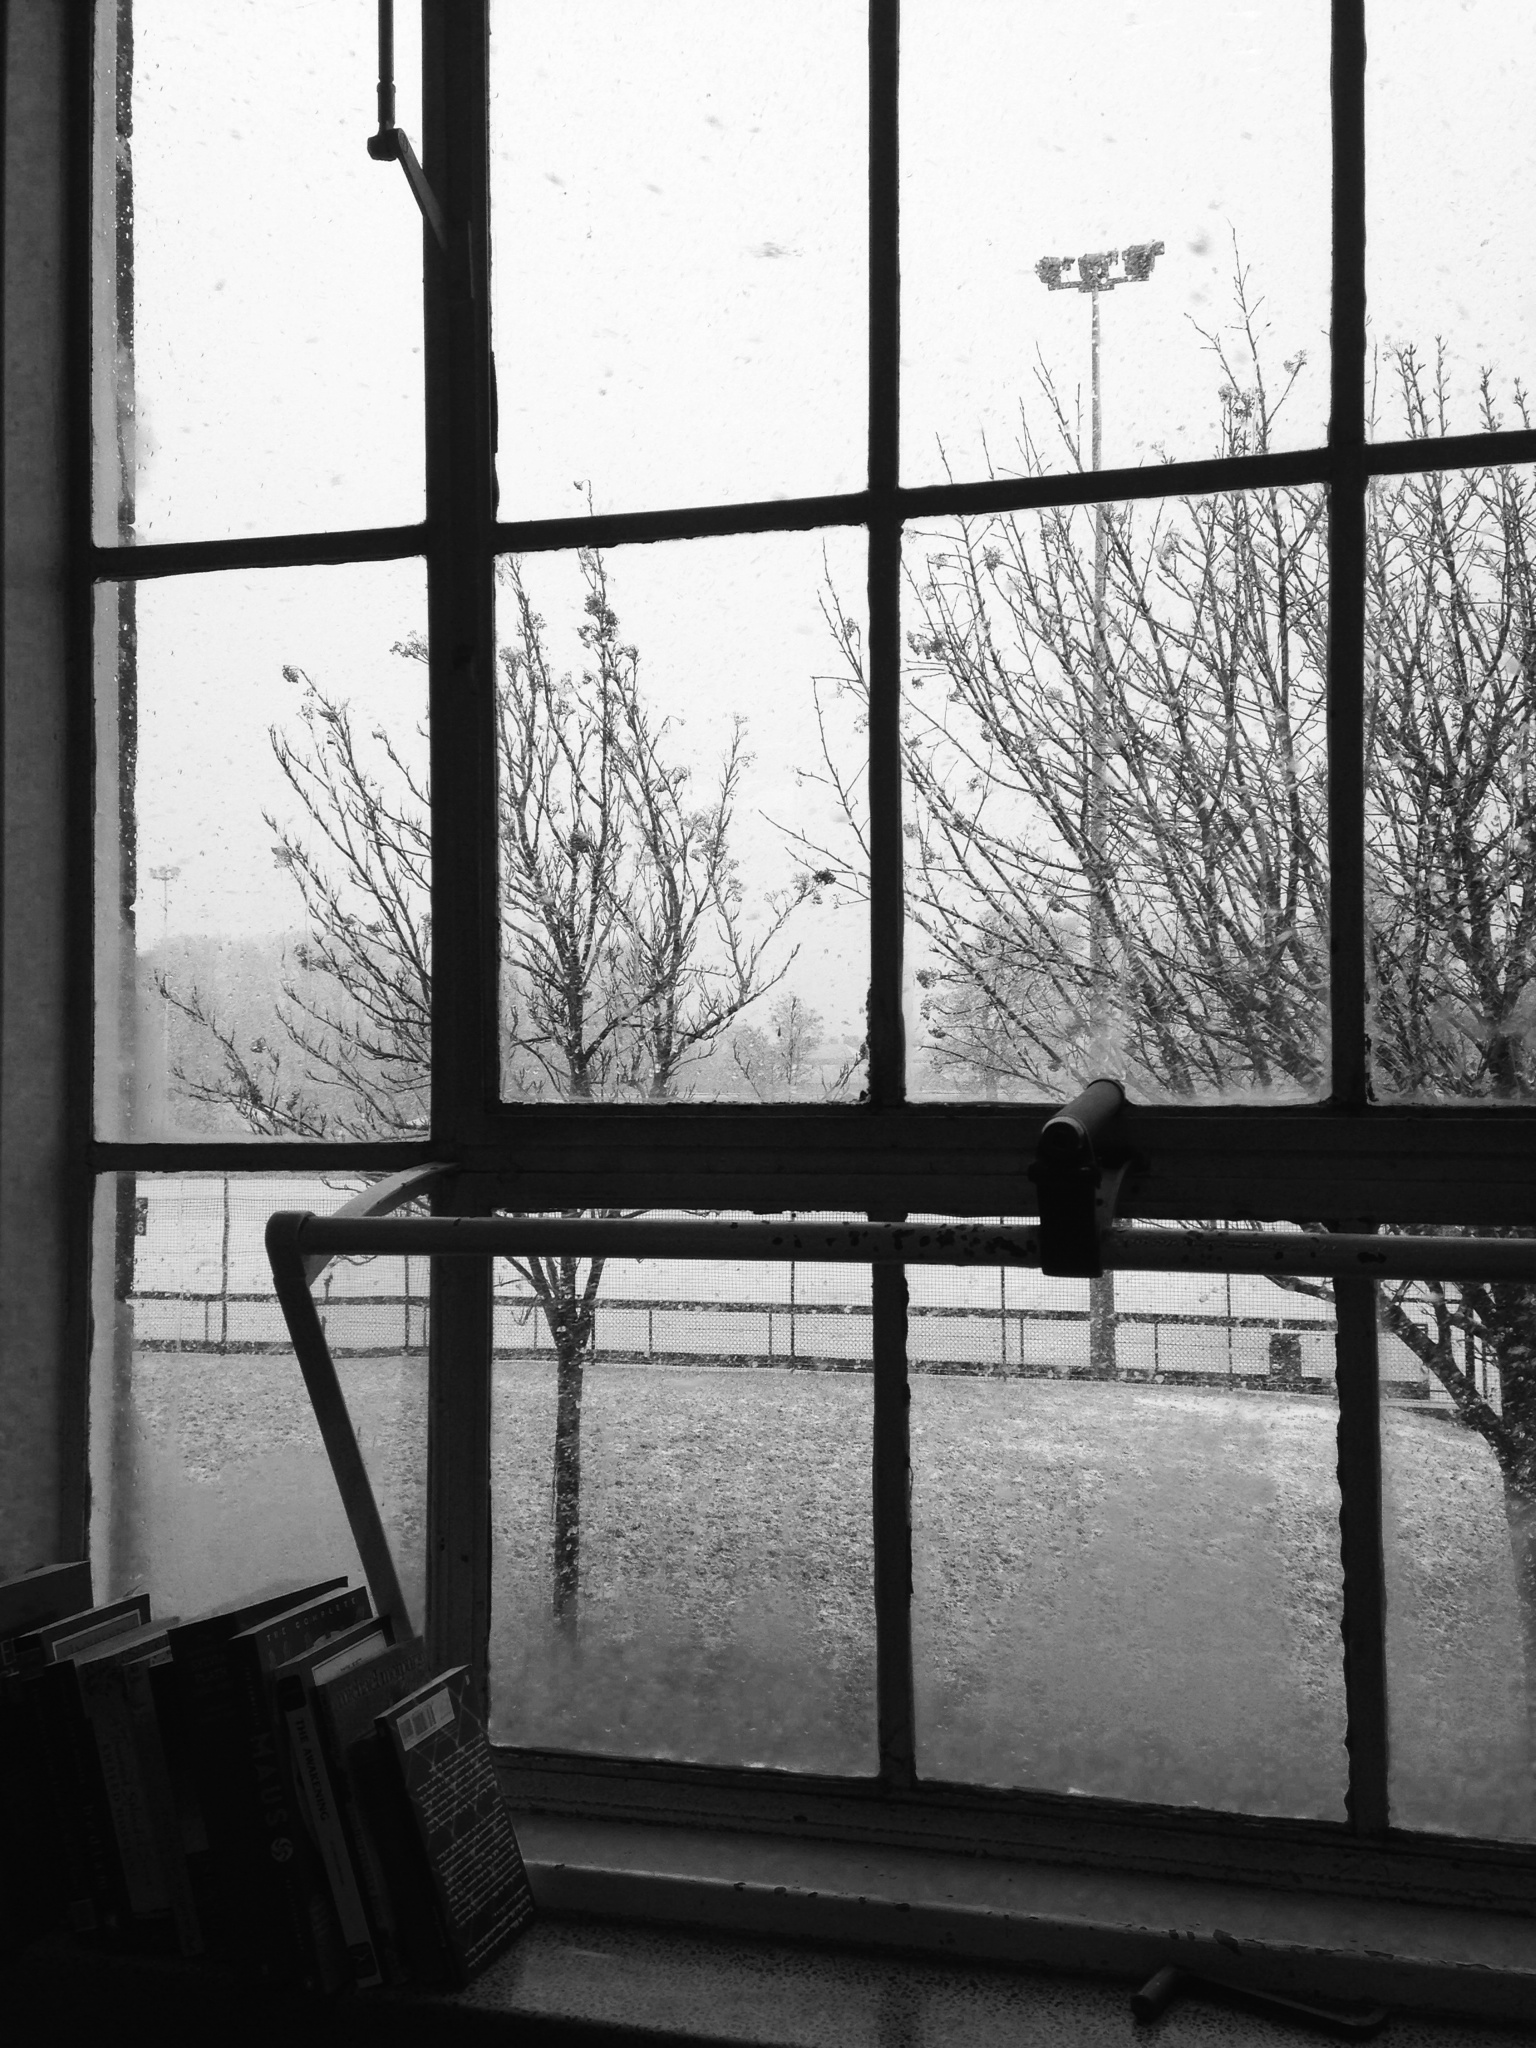 Snow. From my classroom window